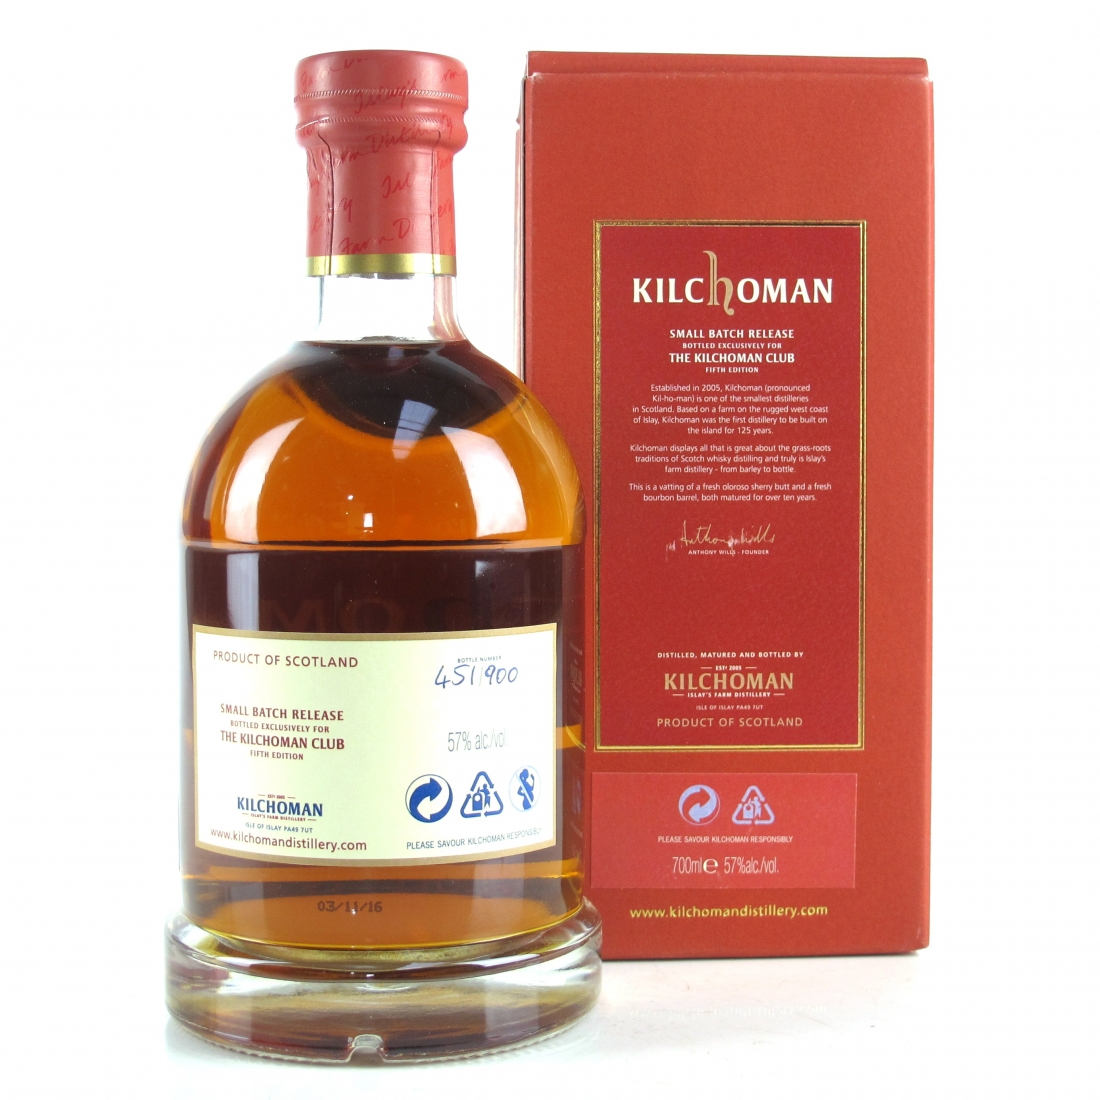 Kilchoman 10 Year Old / Kilchoman Club 5th Edition